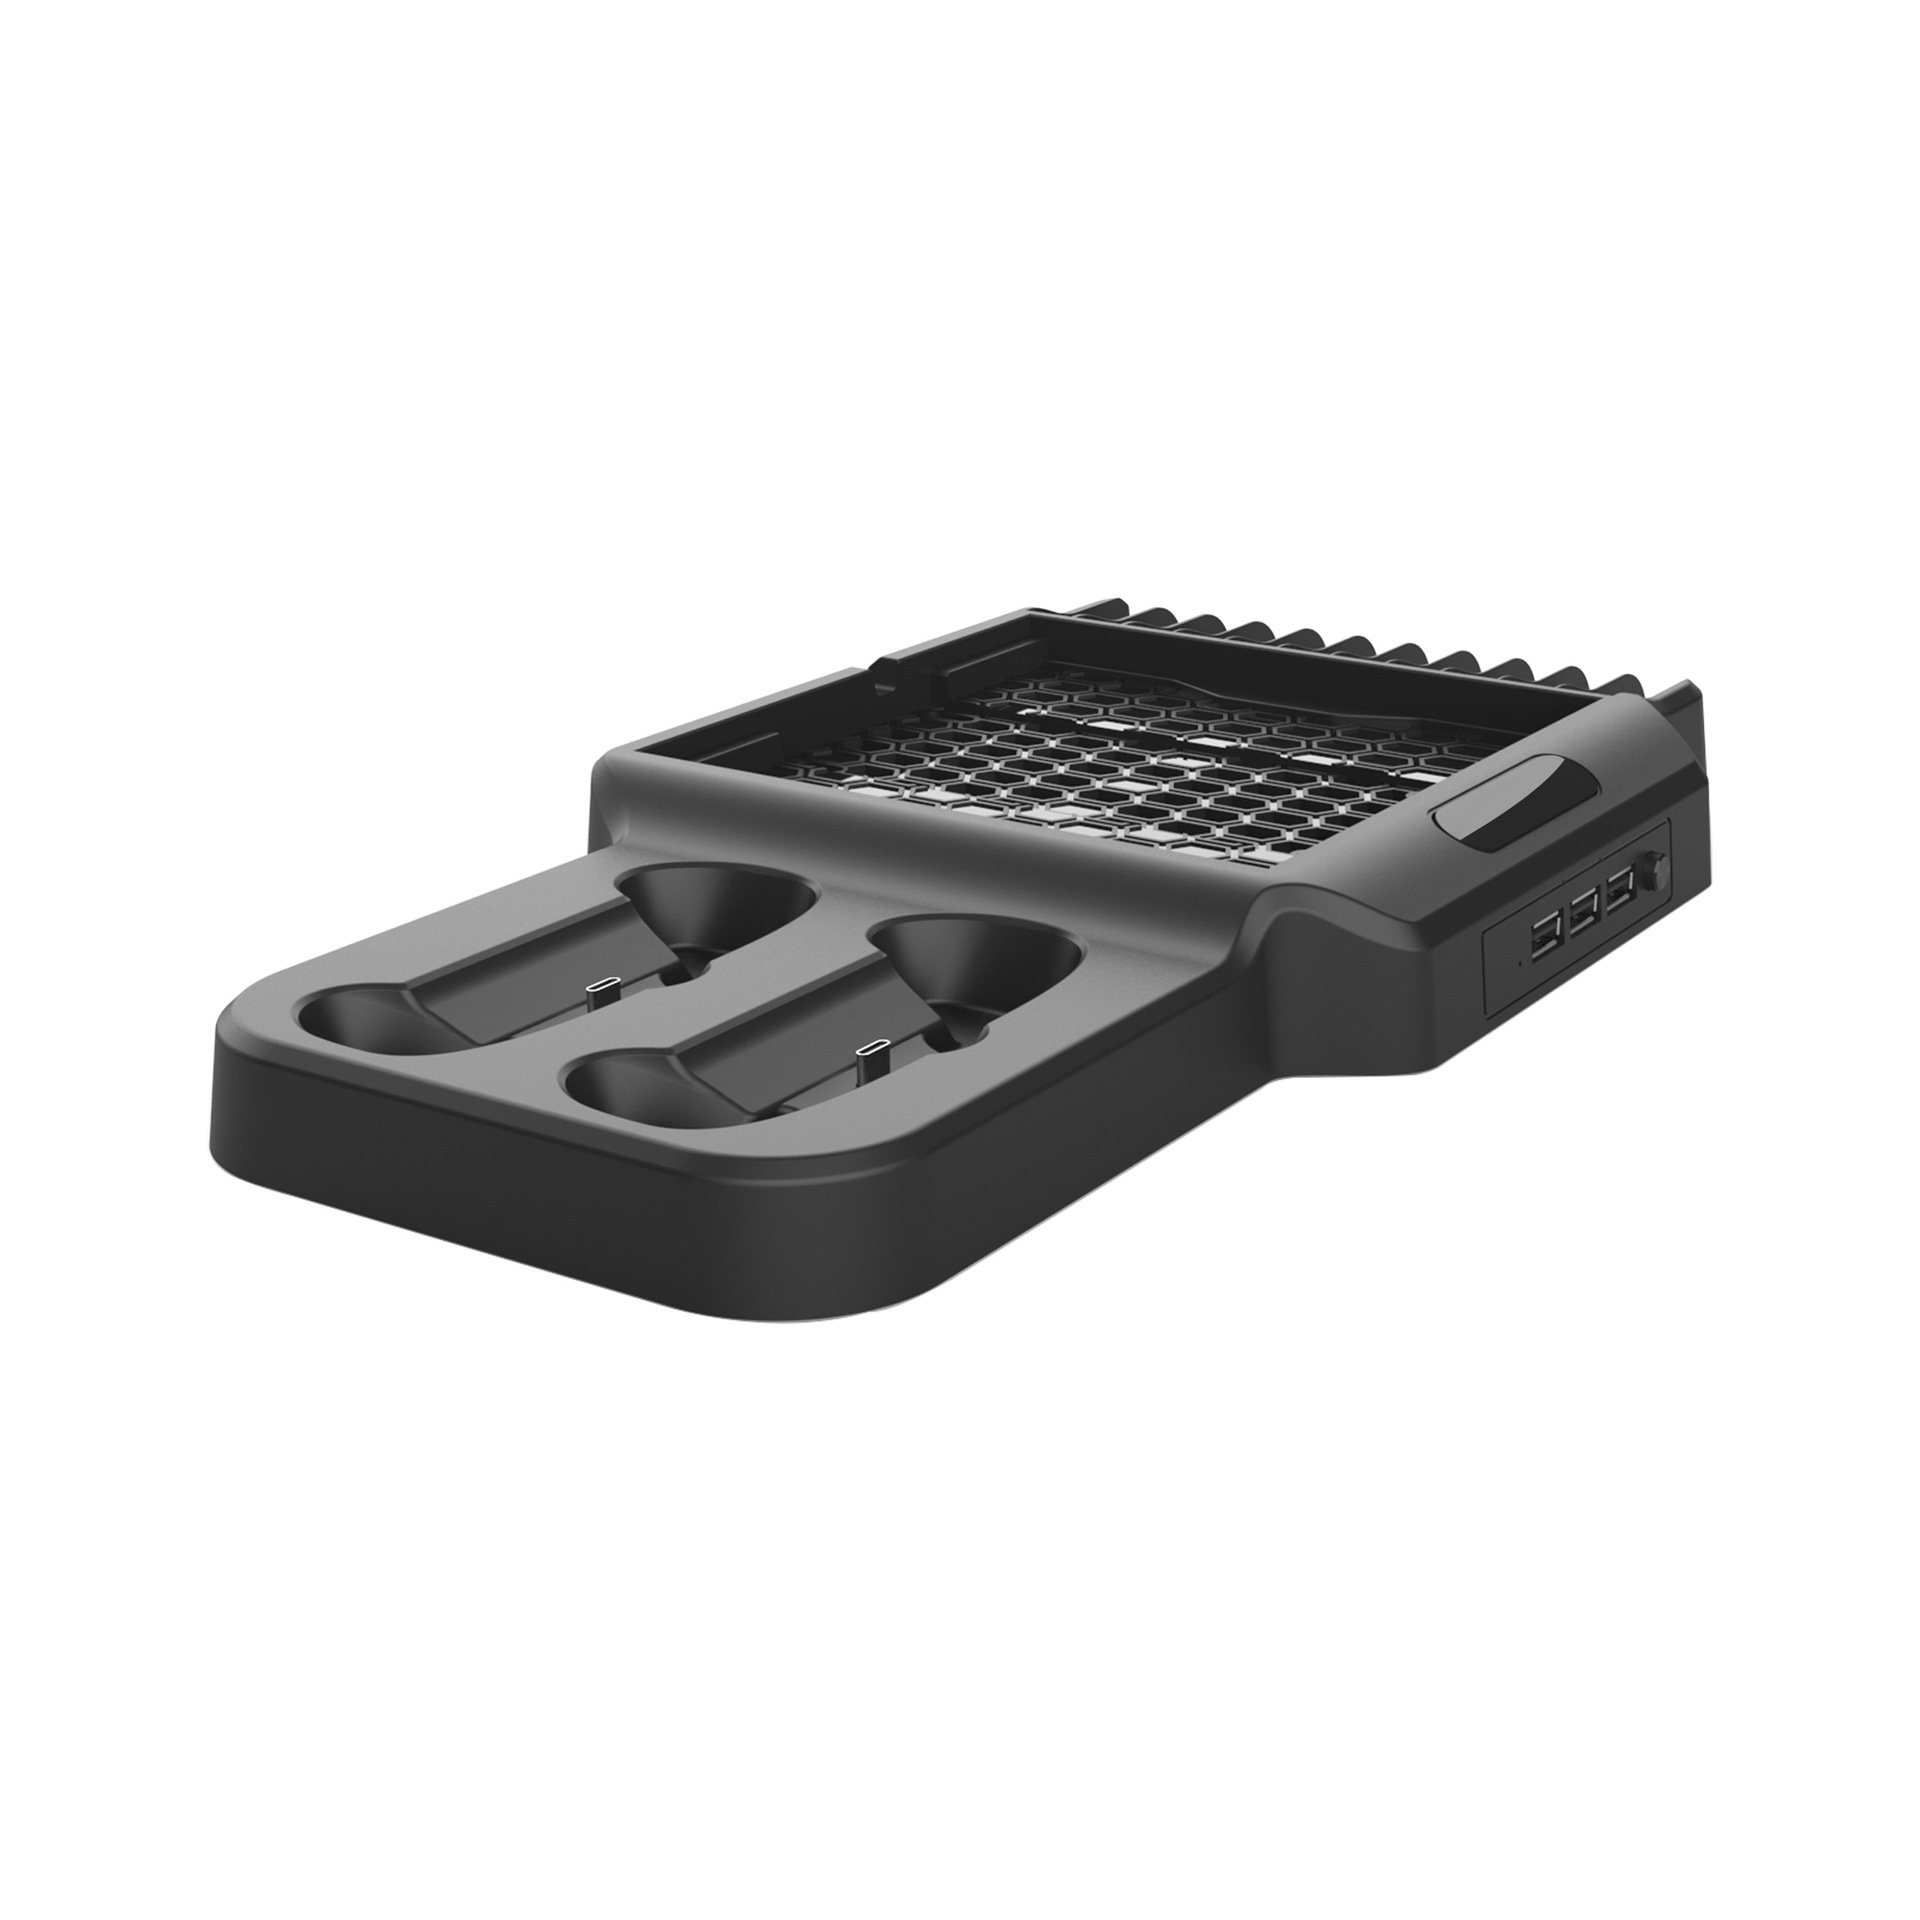 Vertical Stand For XSX Game Console with USB HUB